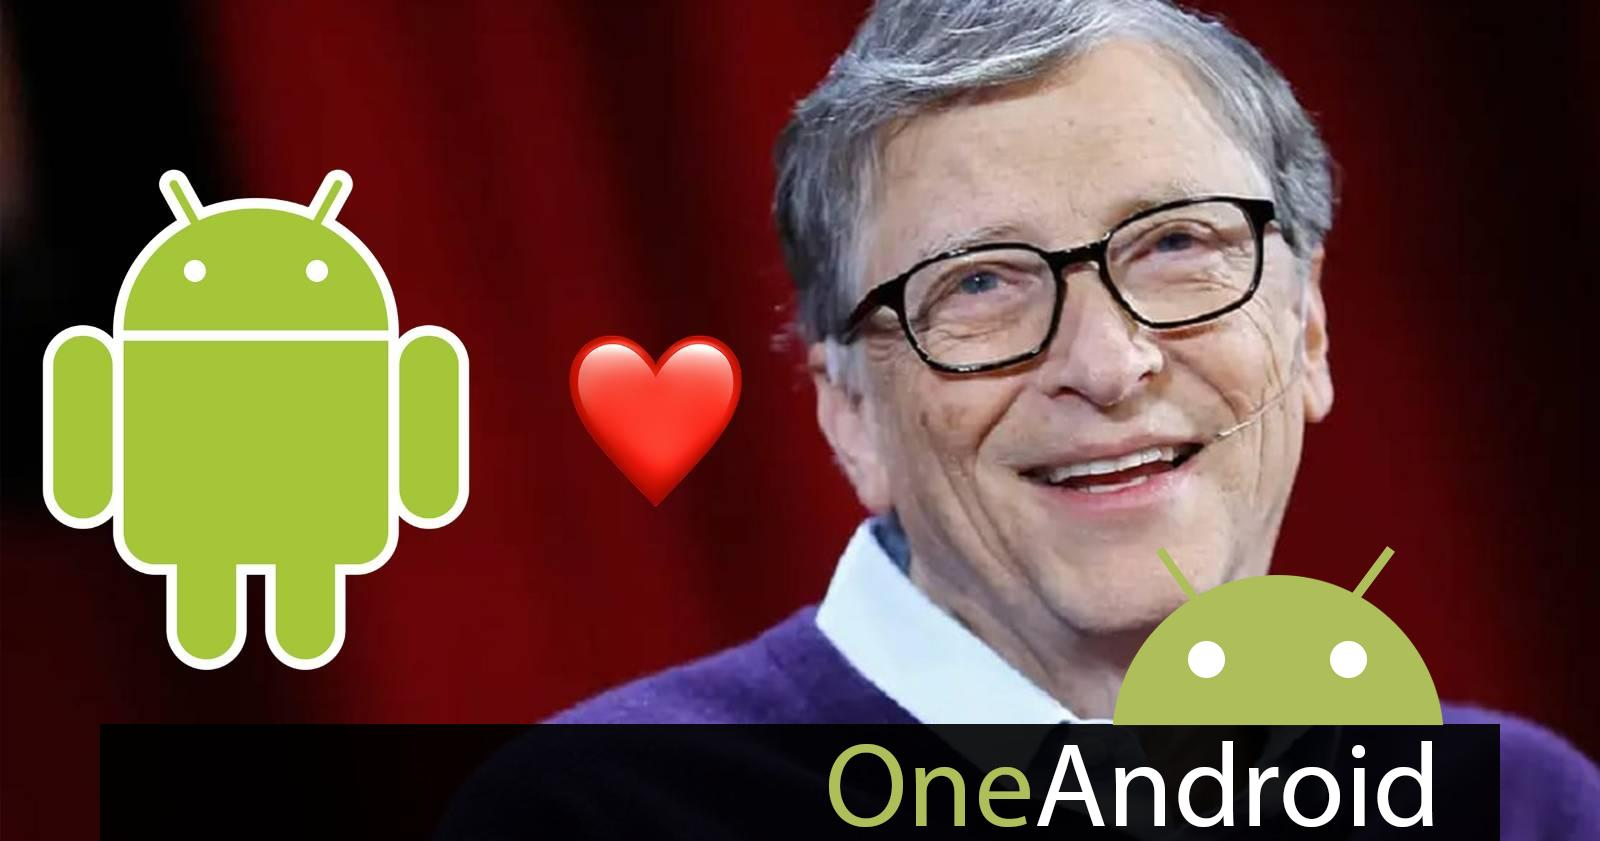 Bill Gates uses Android